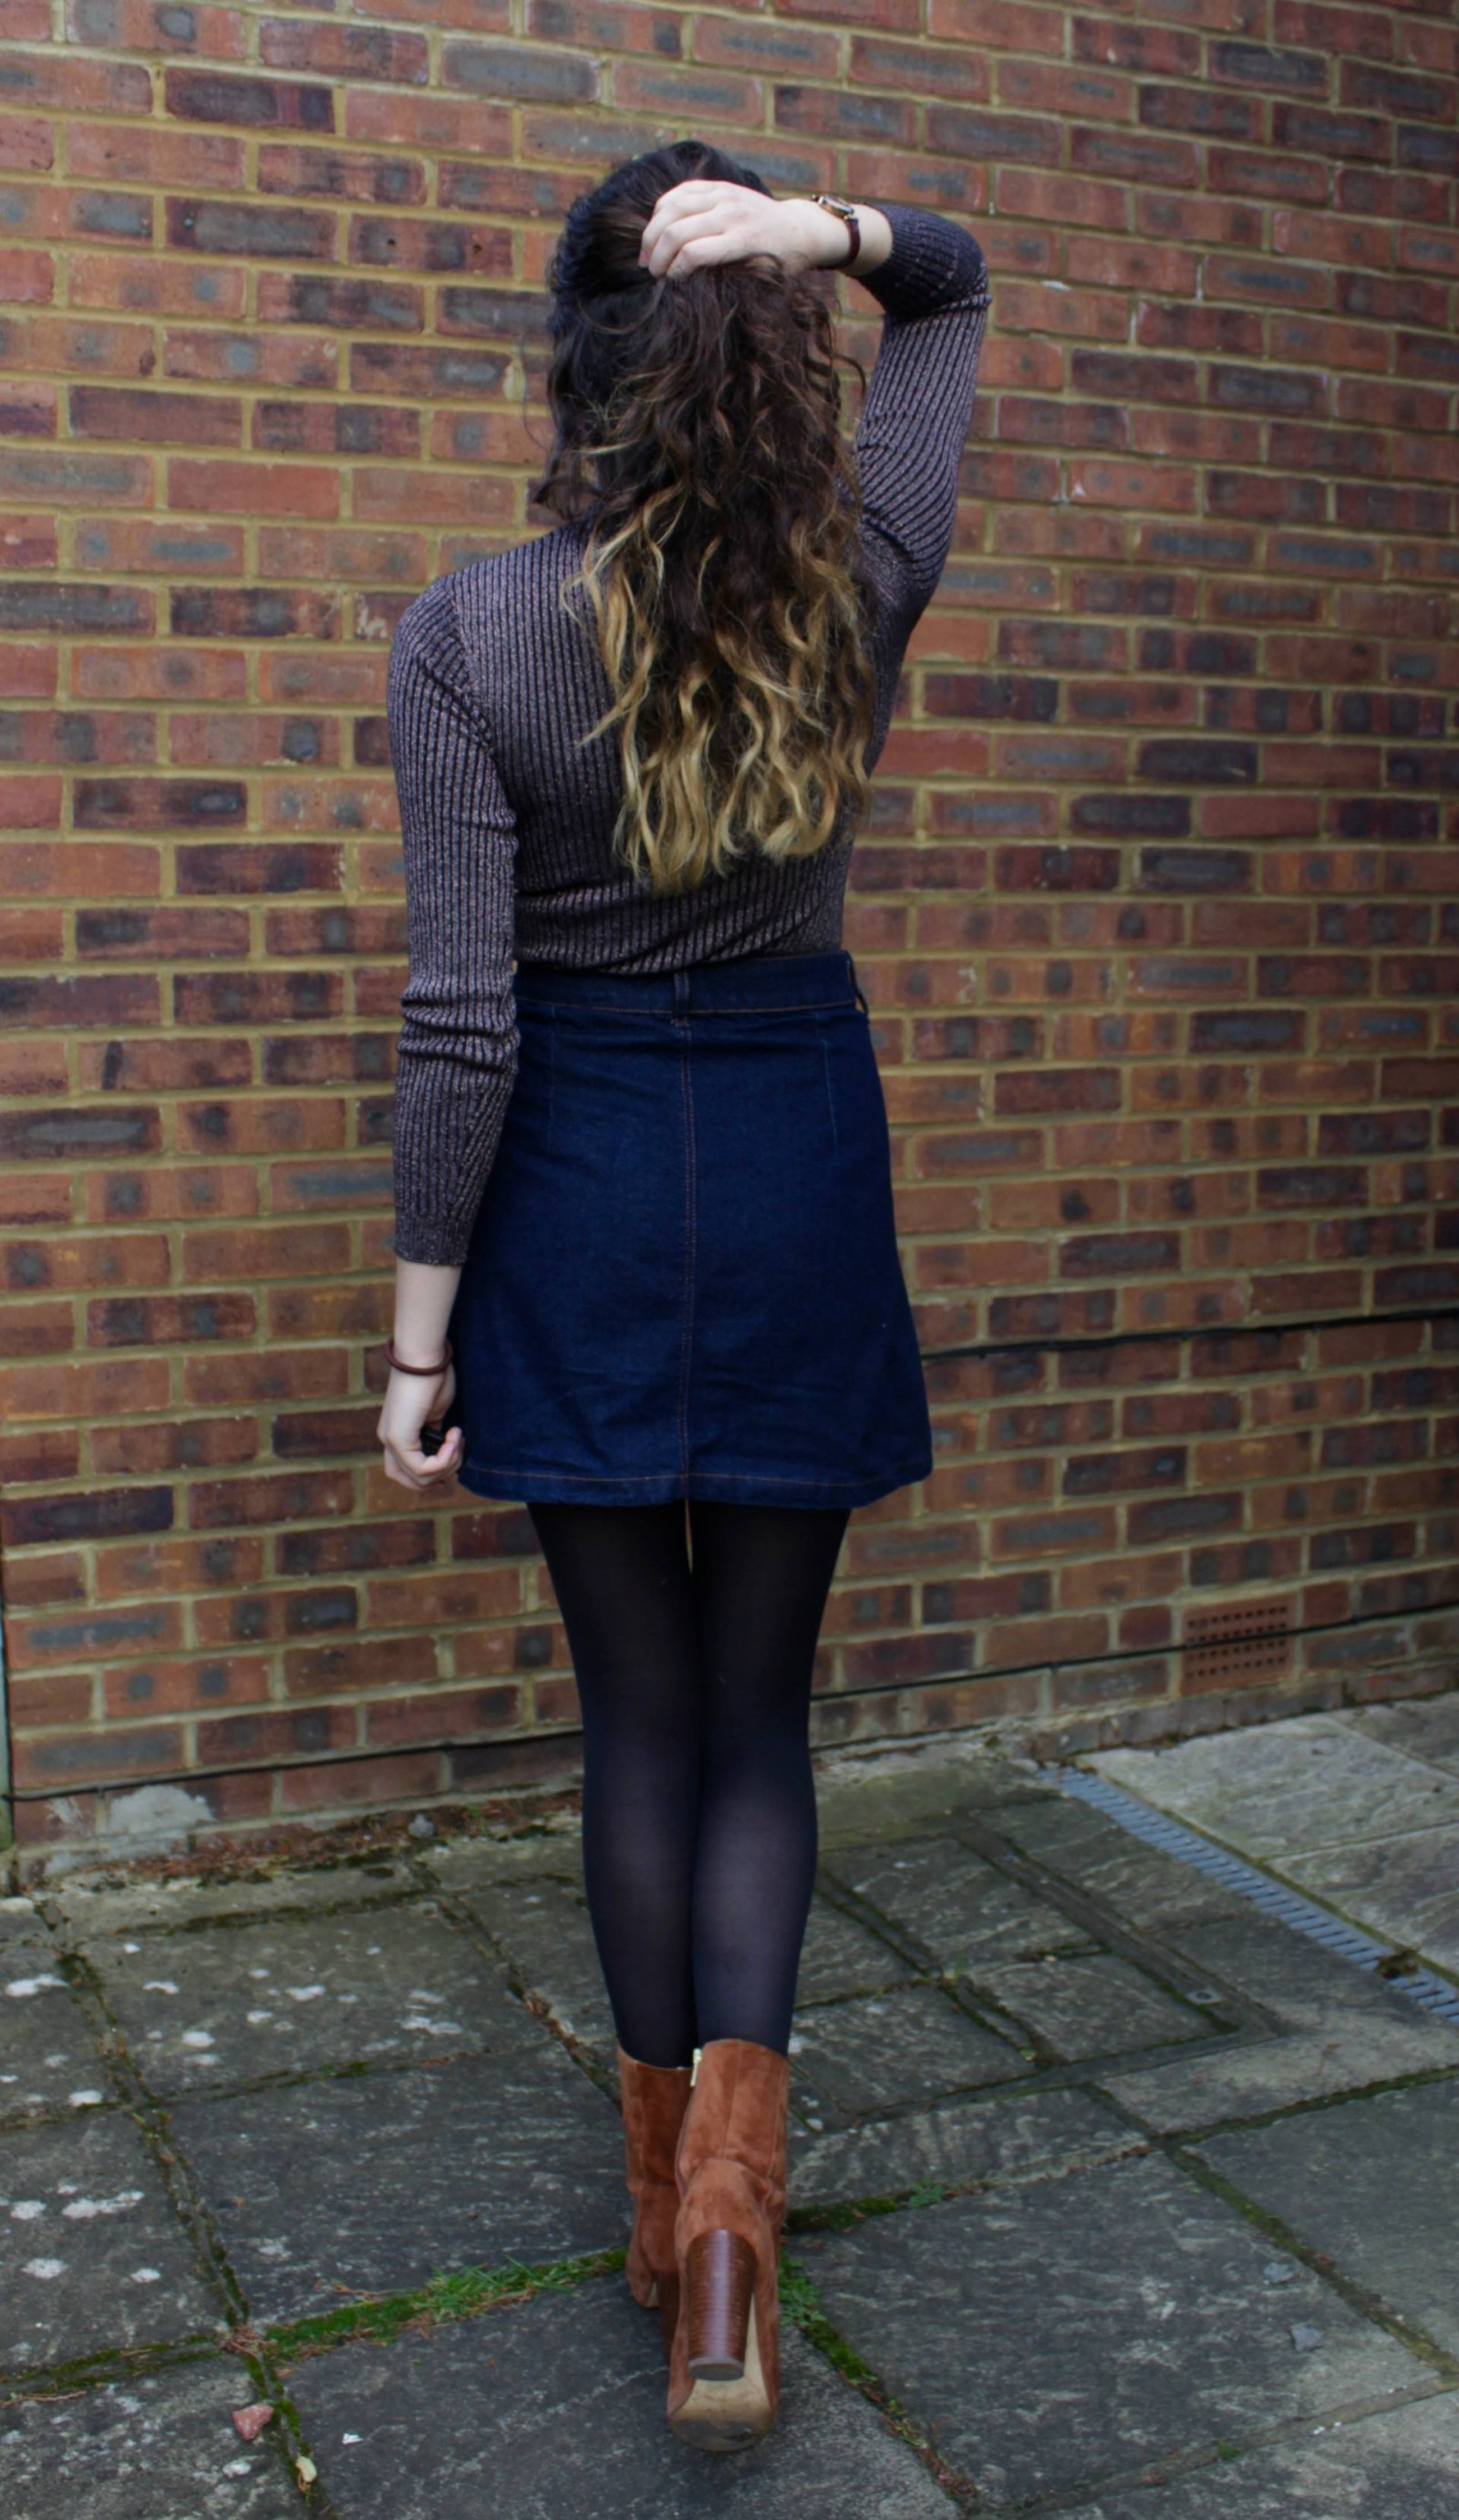 Denim skirt outfit from the back